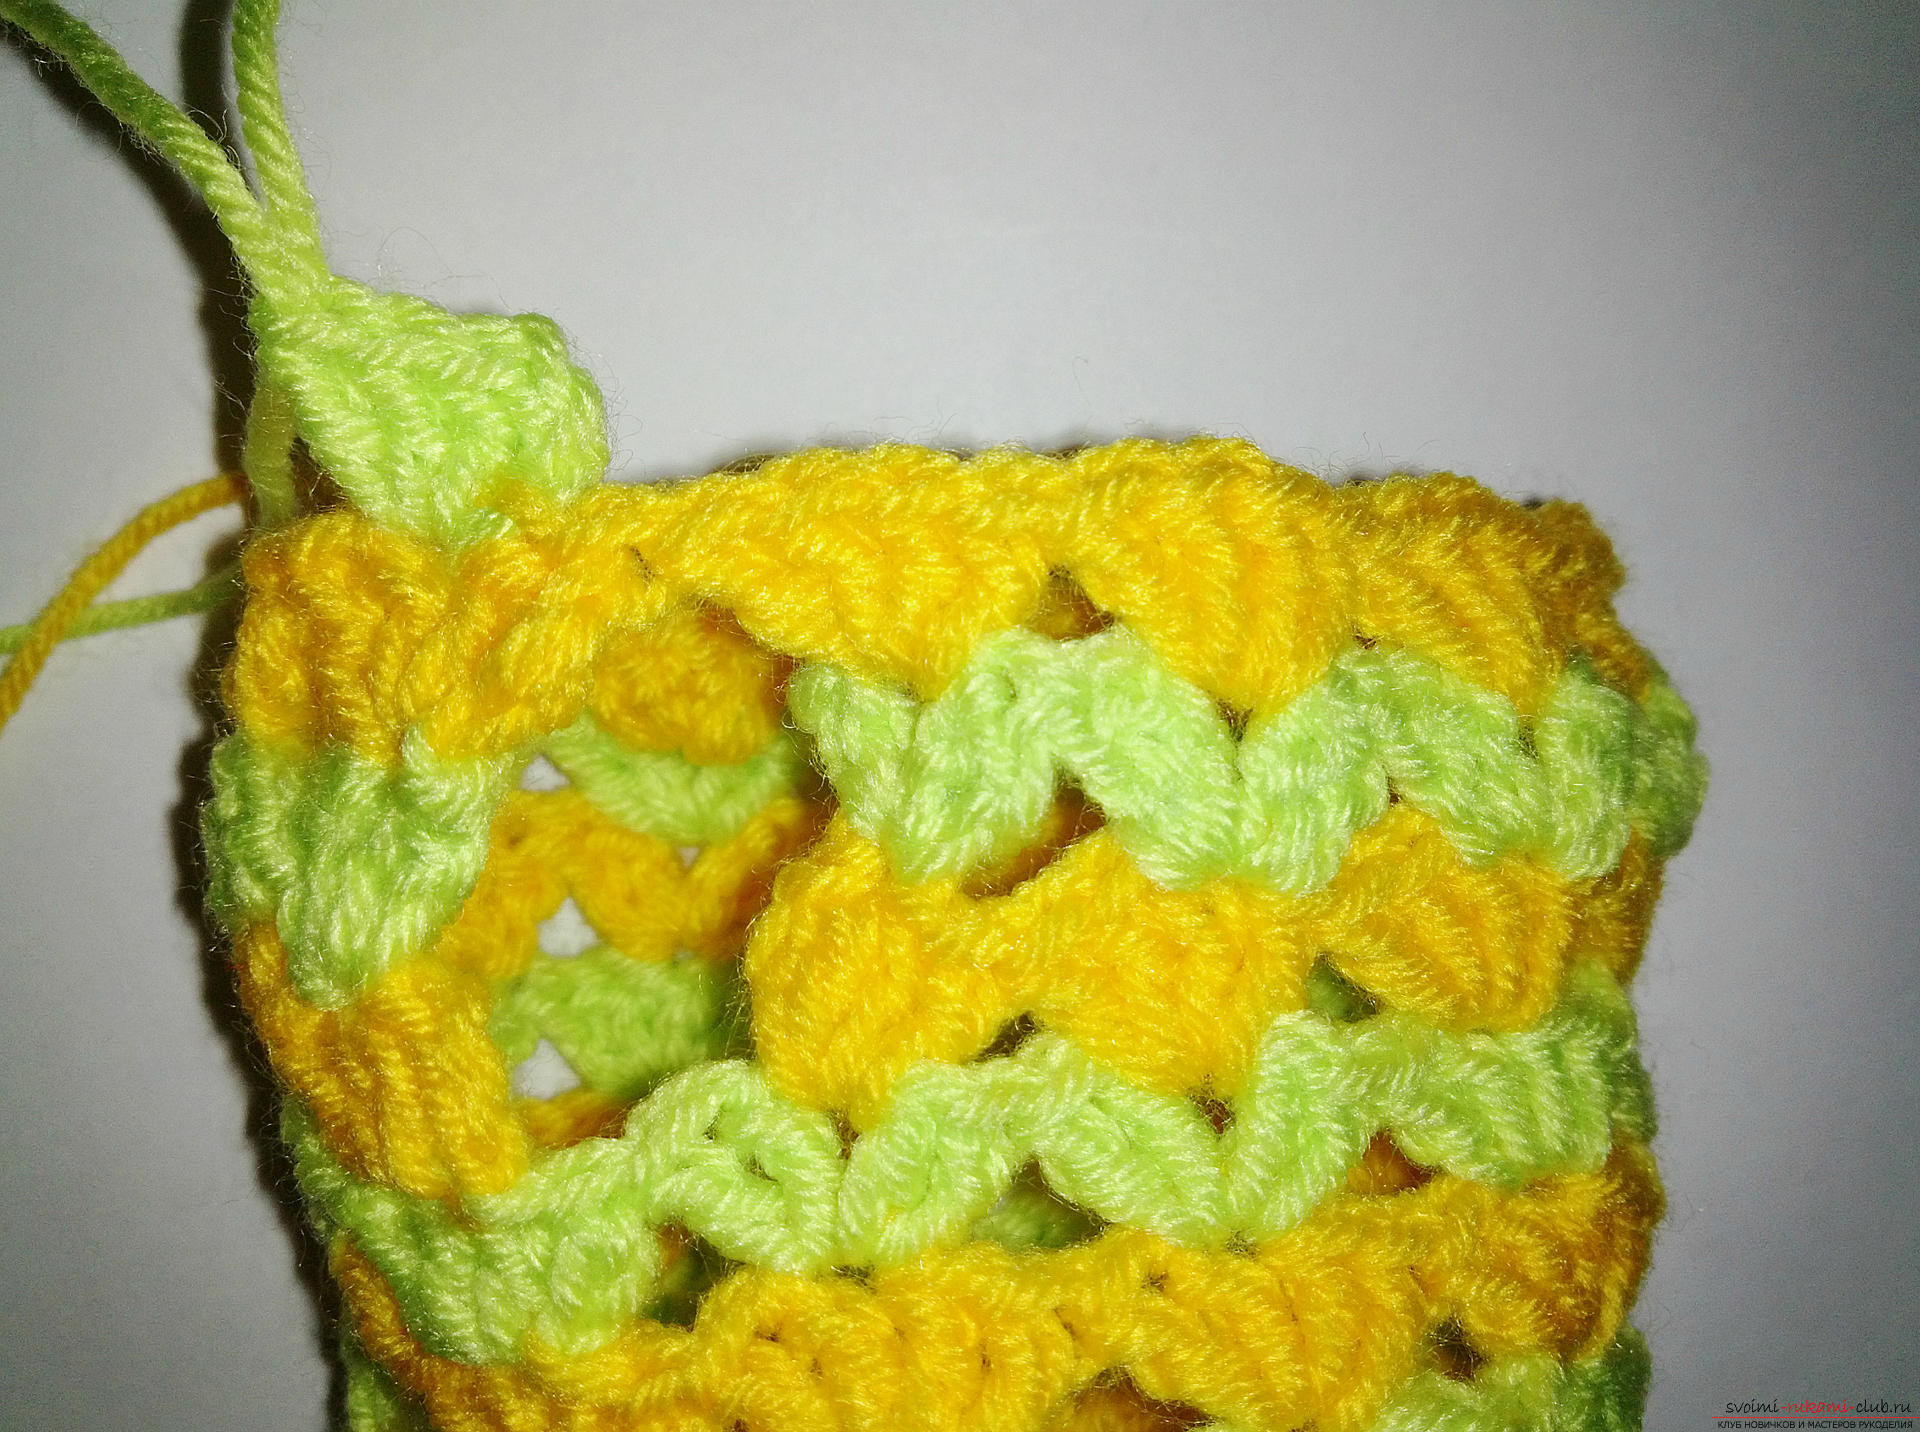 A master class with a photo and a description of the process will teach how to tie fishnet mitts crochet. Picture №10